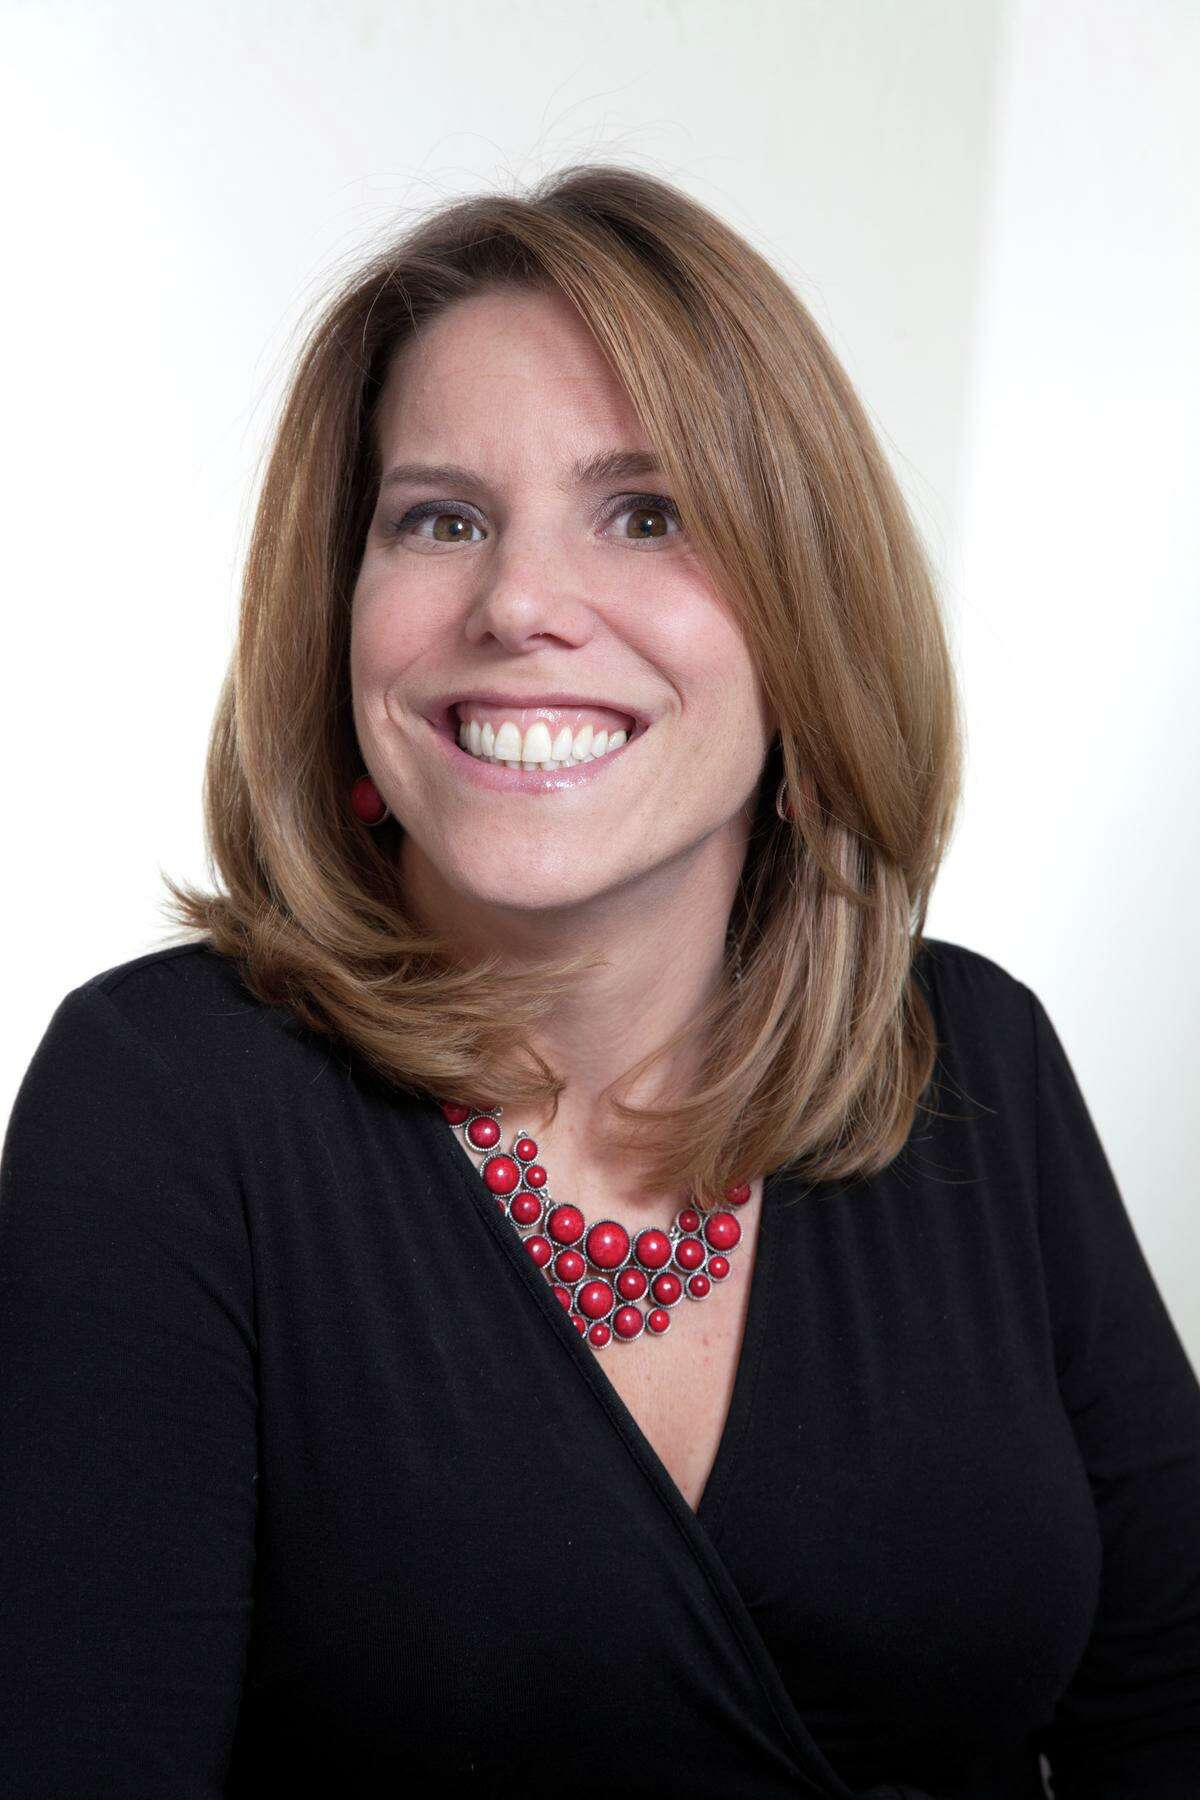 New Canaan: The Child Advocacy Center, Children's Connection's Director is Kari Pesavento. The Human Services Council is observing the month of April as Child Abuse Prevention Month.